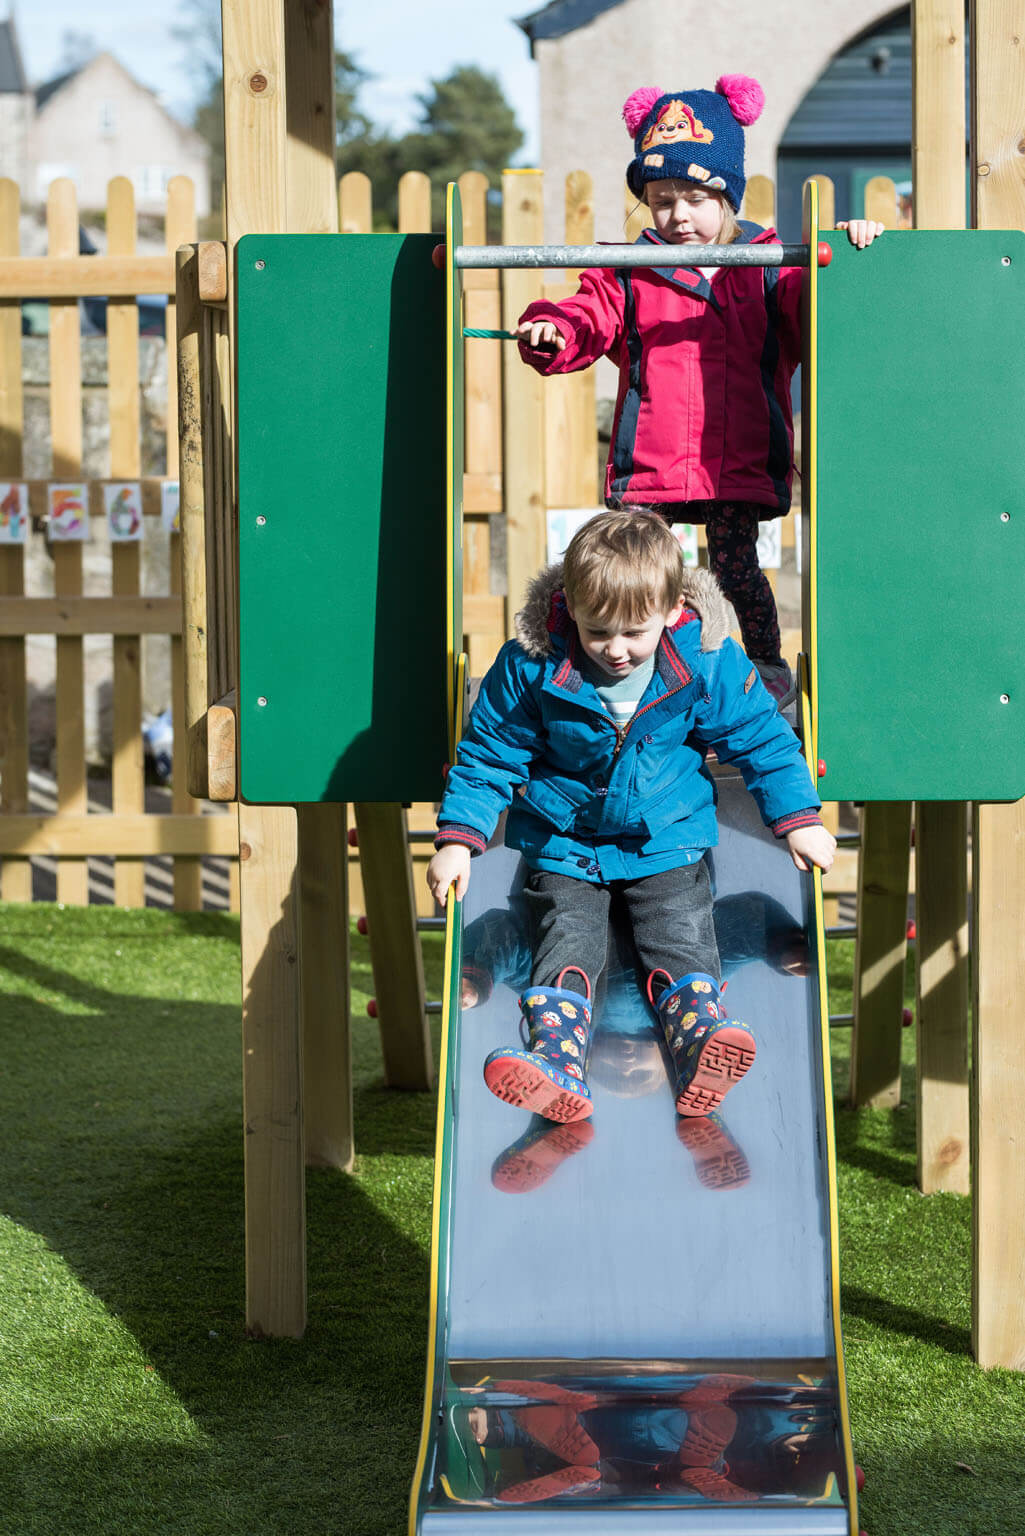 Celtic Cross Nursery Aberdeen Playrooms Outdoor